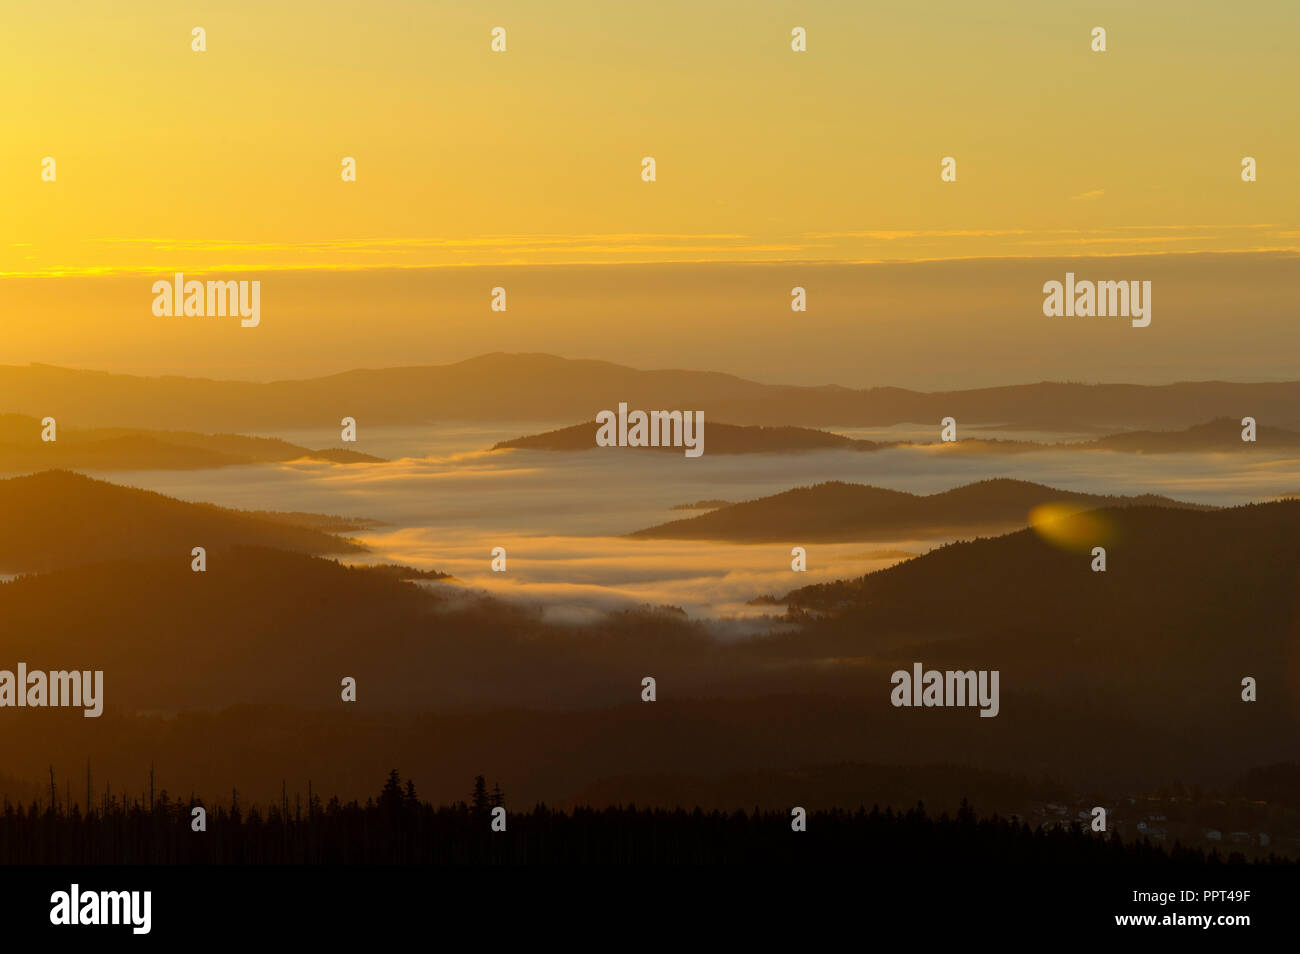 Lusen, october, Bavarian Forest National Park, Germany Stock Photo